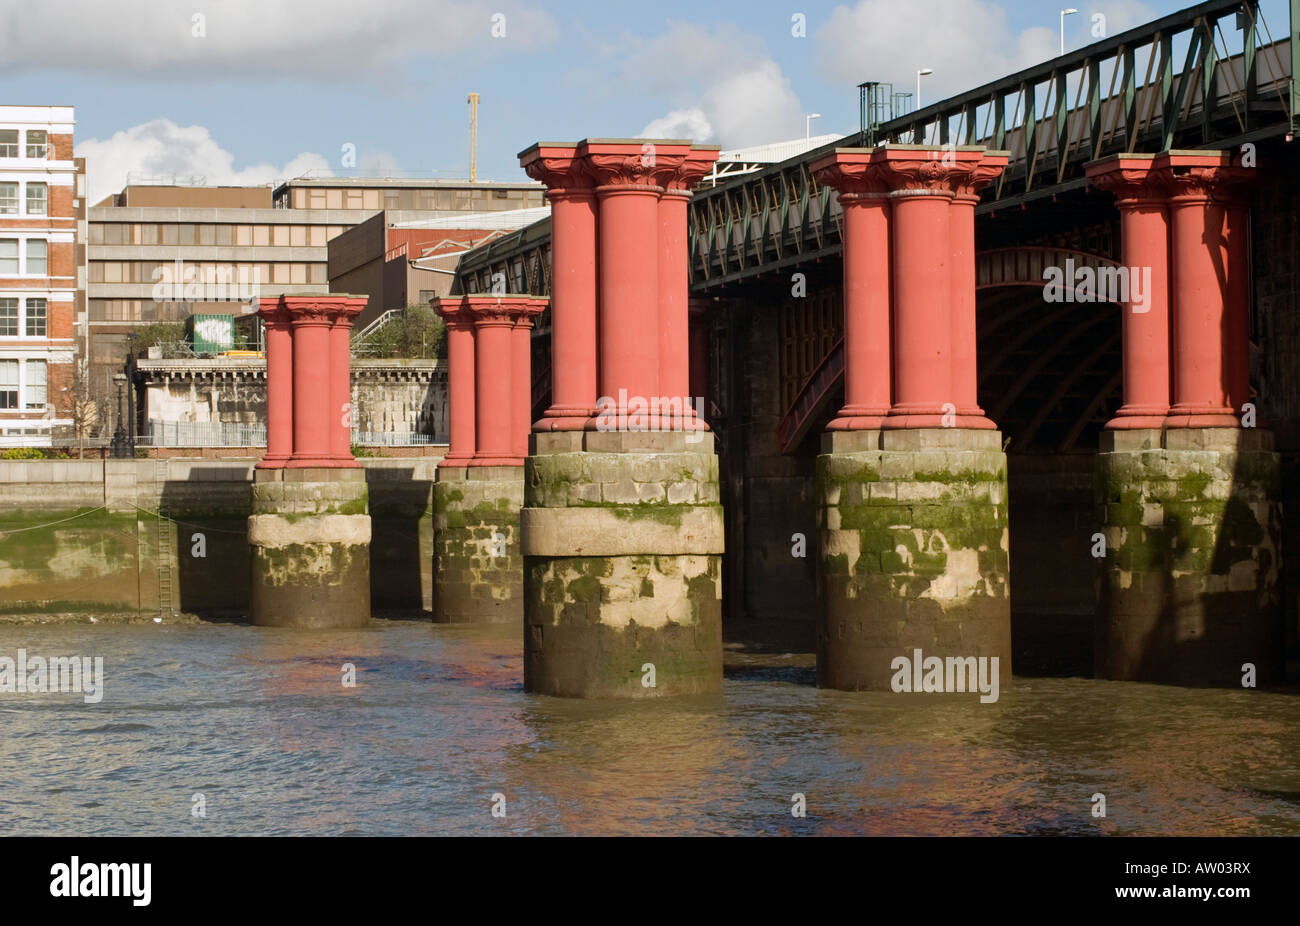 The Red Iron Columns That Once Supported The  London, Chatham & Dover Railway At Blackfriars London - Stock Image